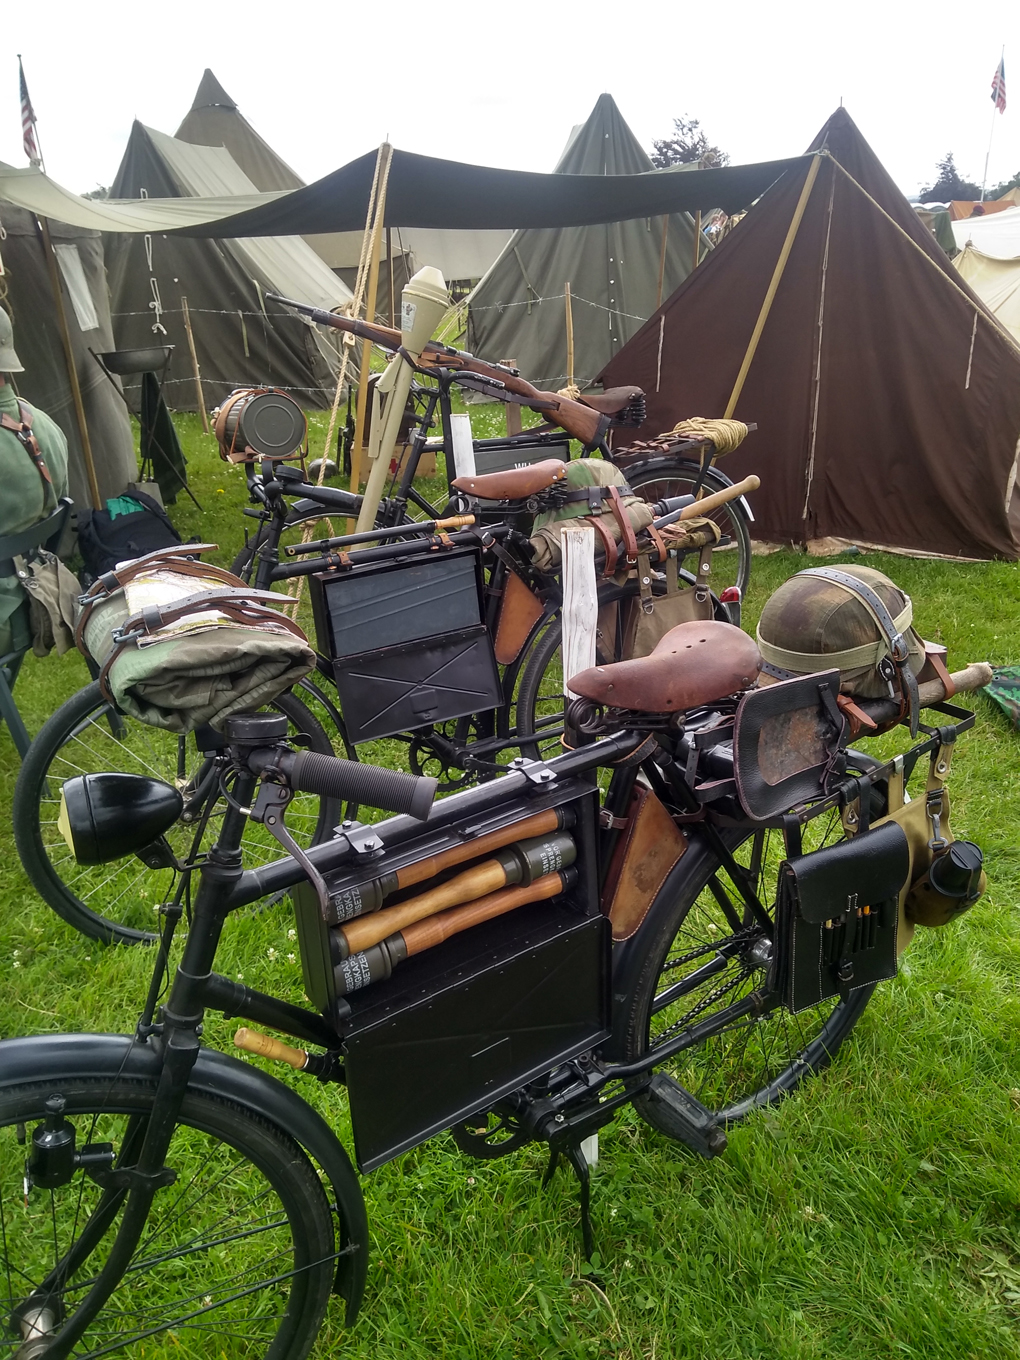 Fully kitted out WWII era military bicycles